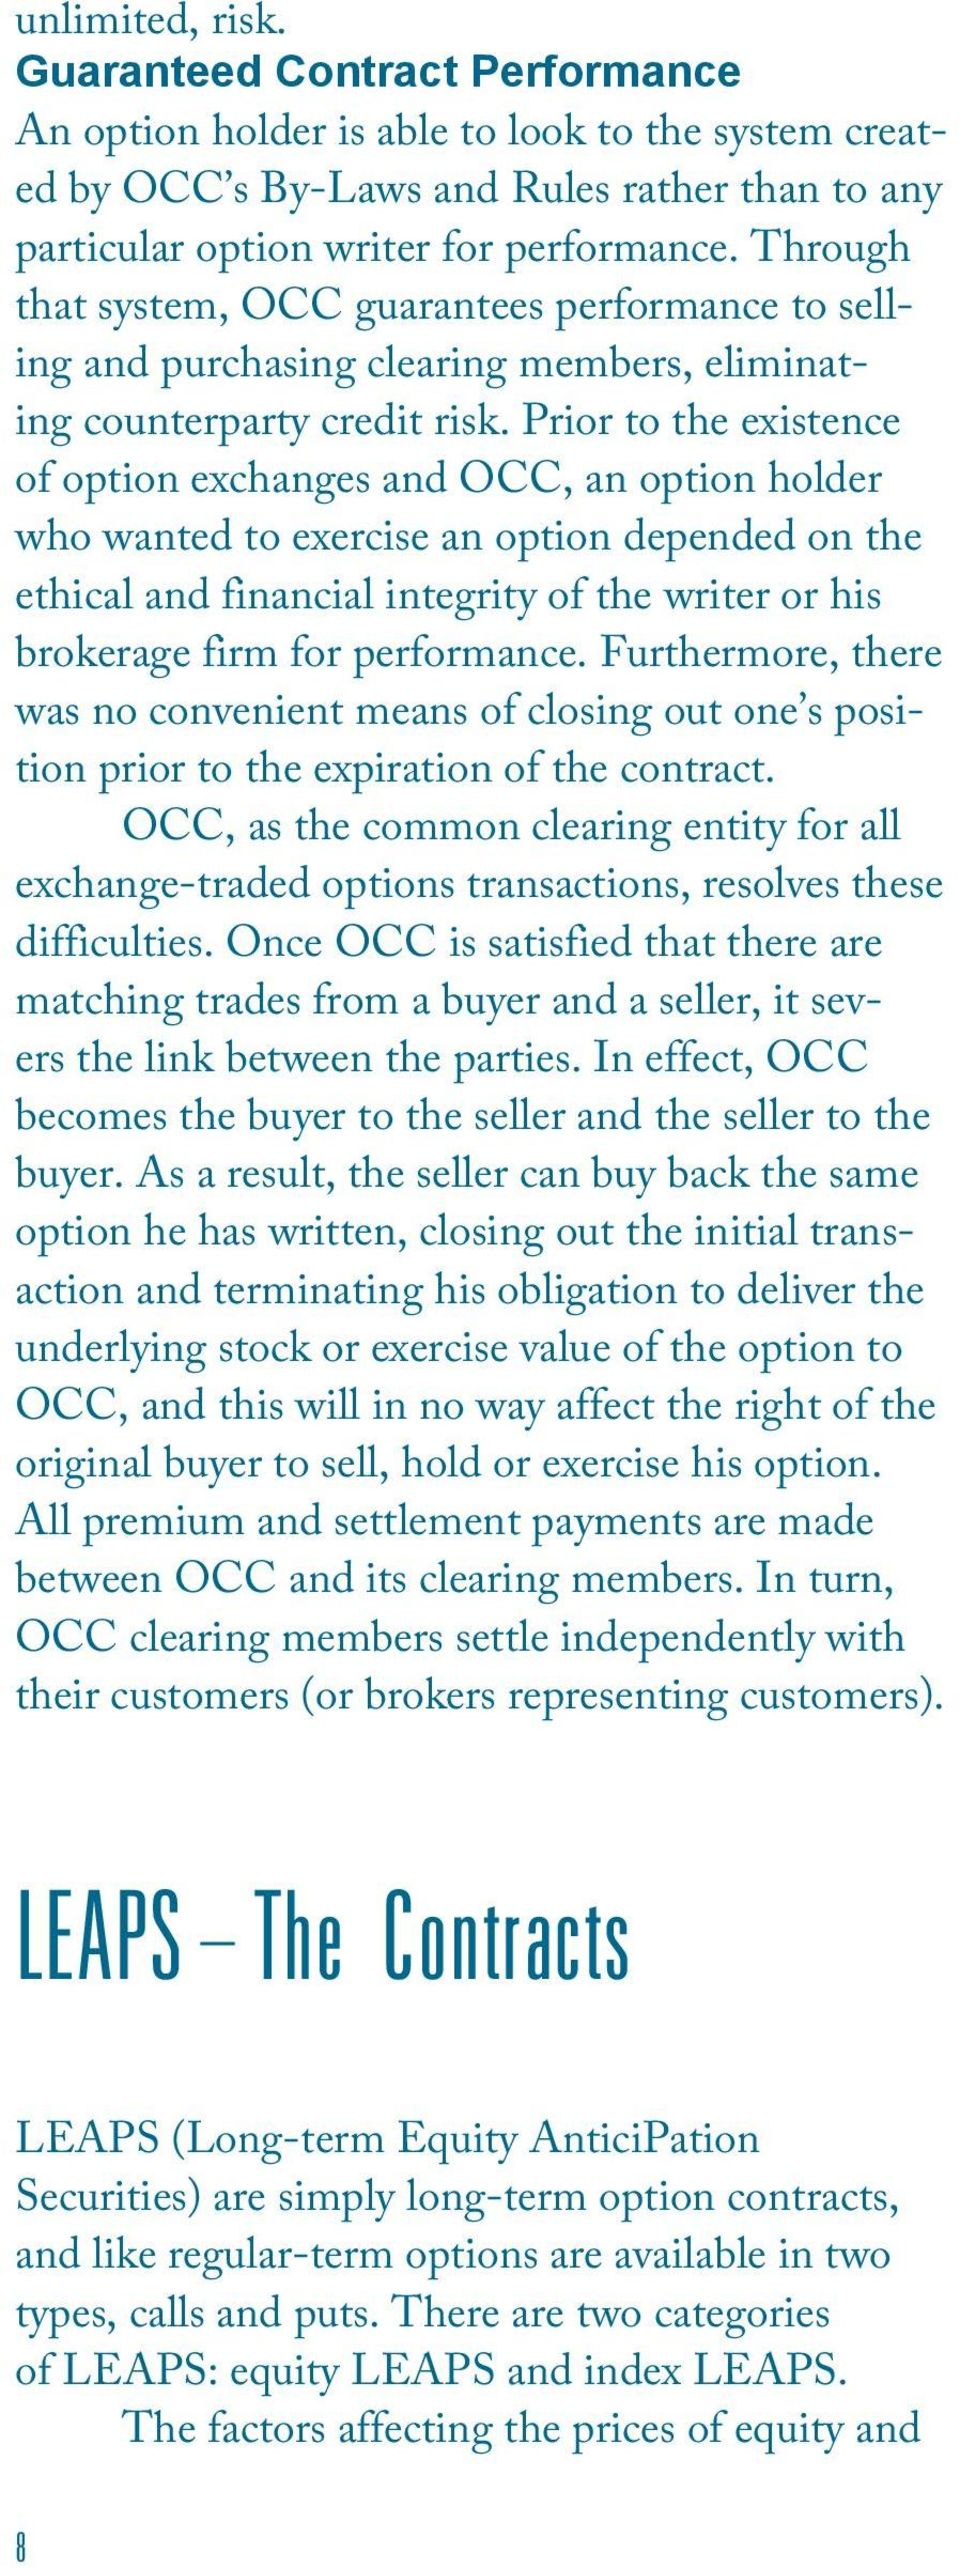 Prior to the existence of option exchanges and OCC, an option holder who wanted to exercise an option depended on the ethical and financial integrity of the writer or his brokerage firm for